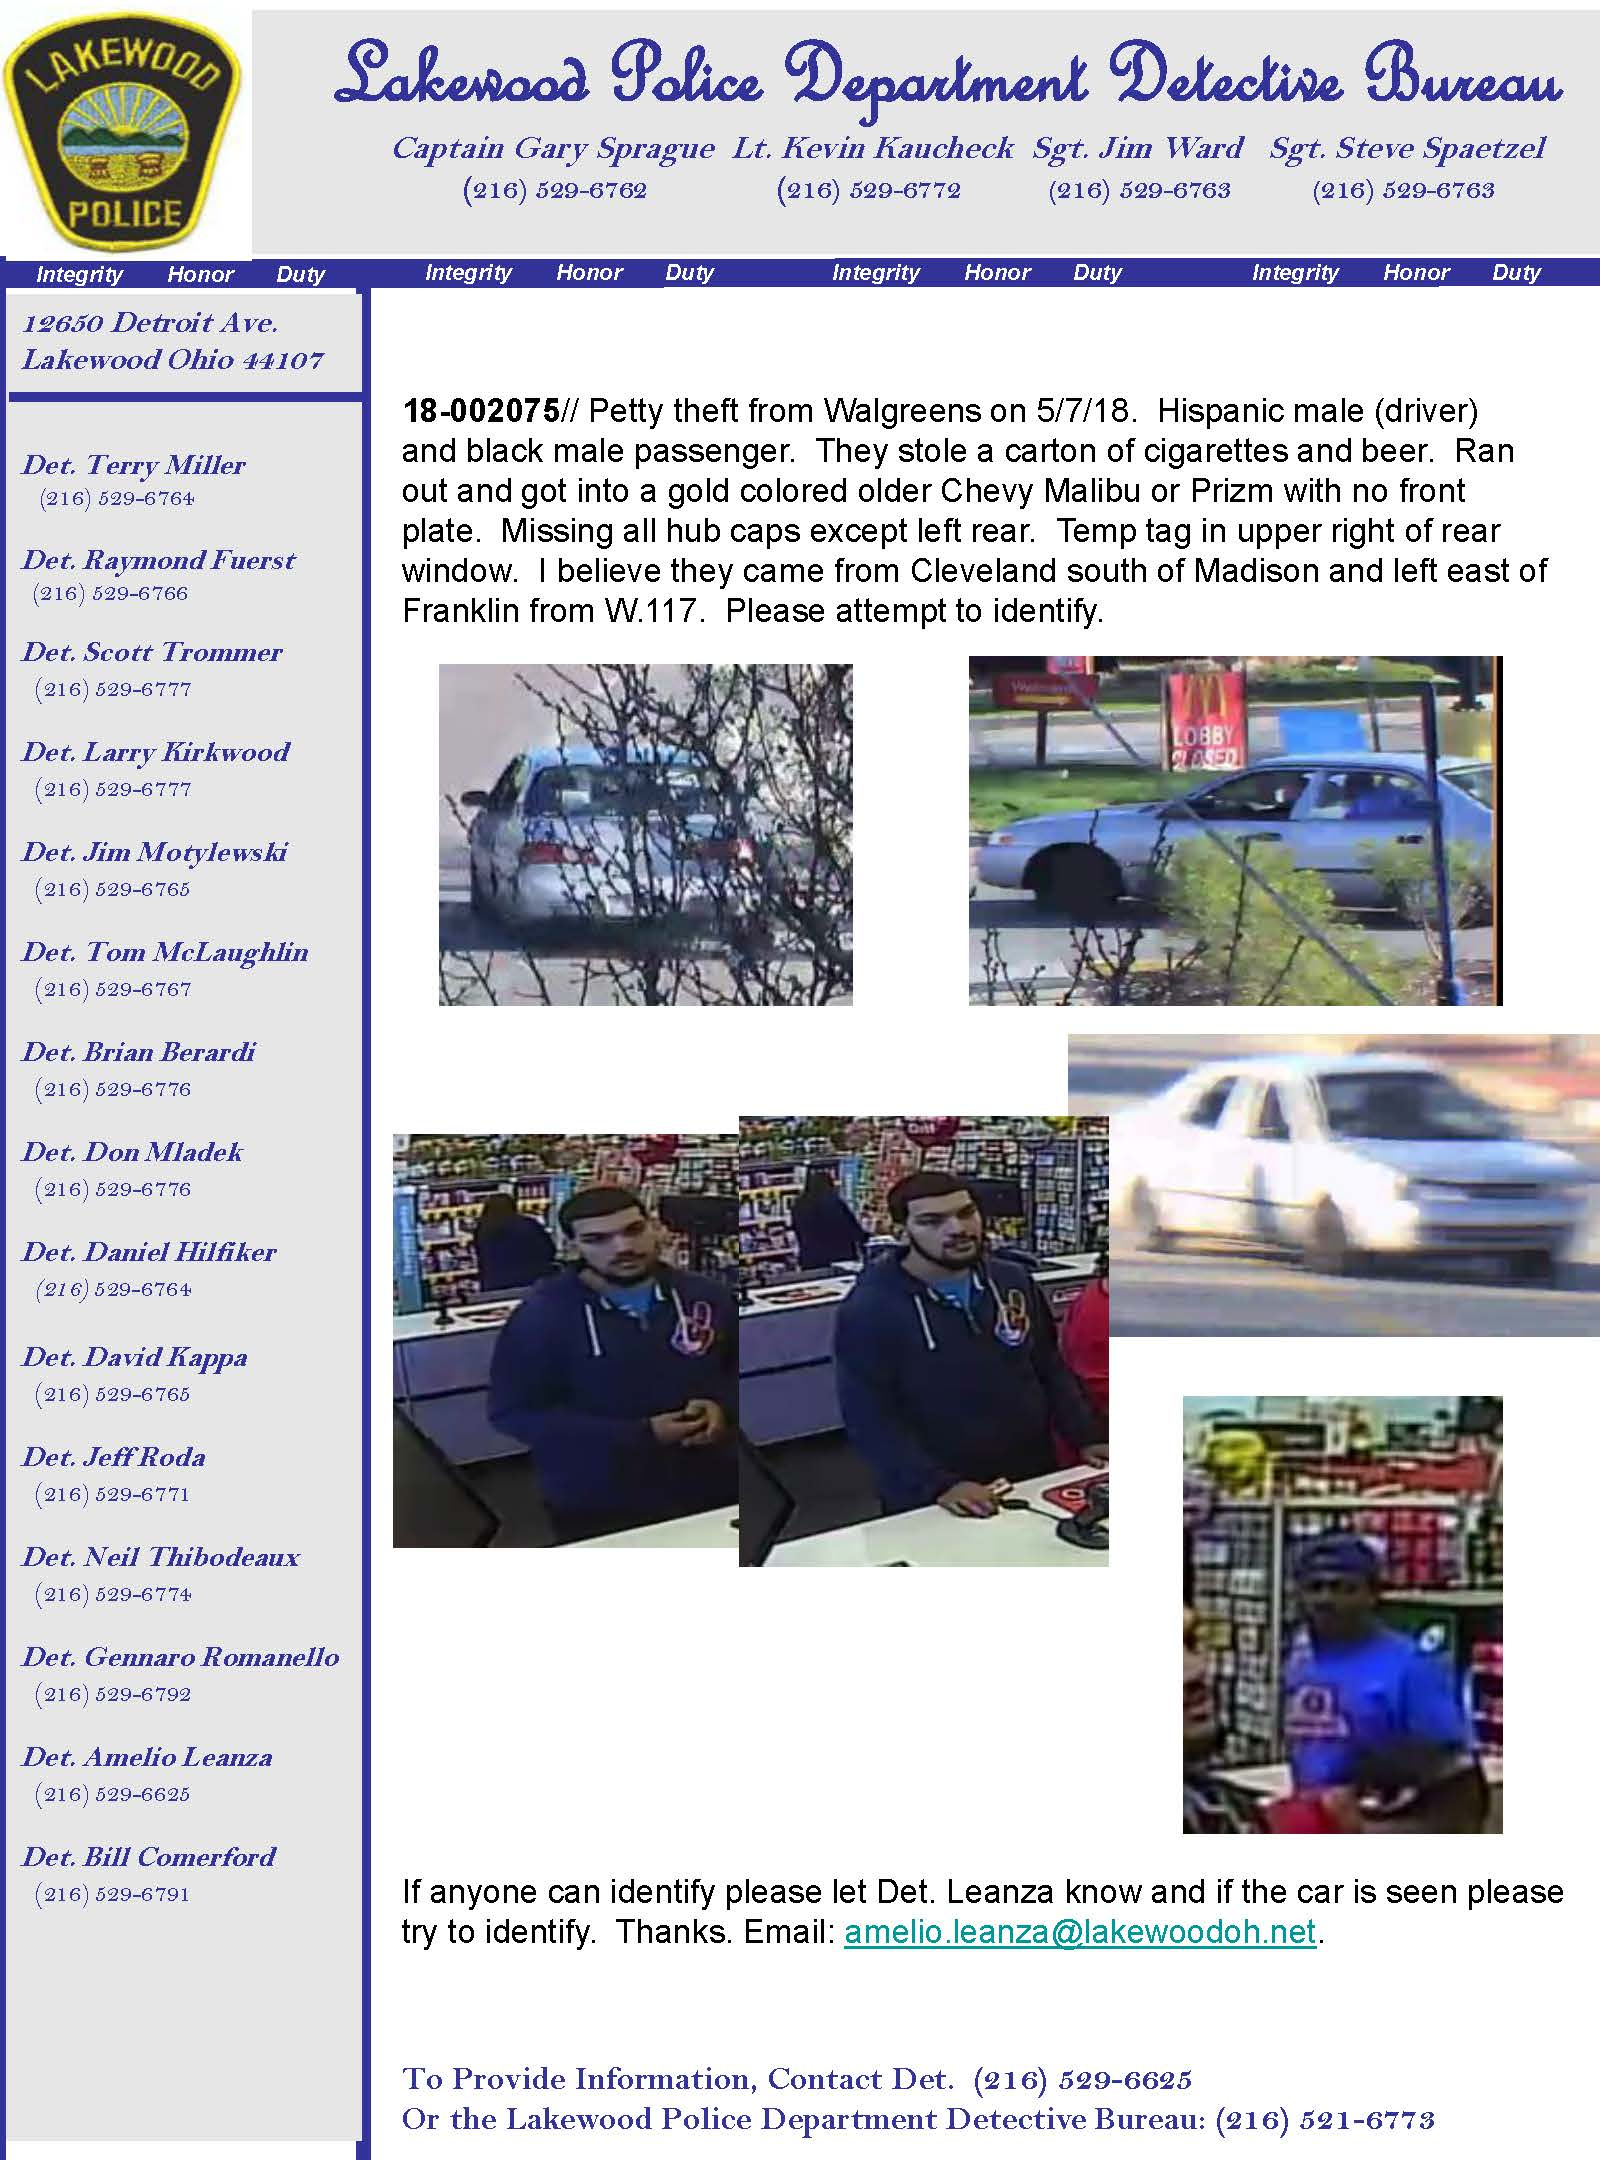 Law Enforcement Agencies Must Confirm The Wanted Status With Lakewood Police Department Prior To Arrest